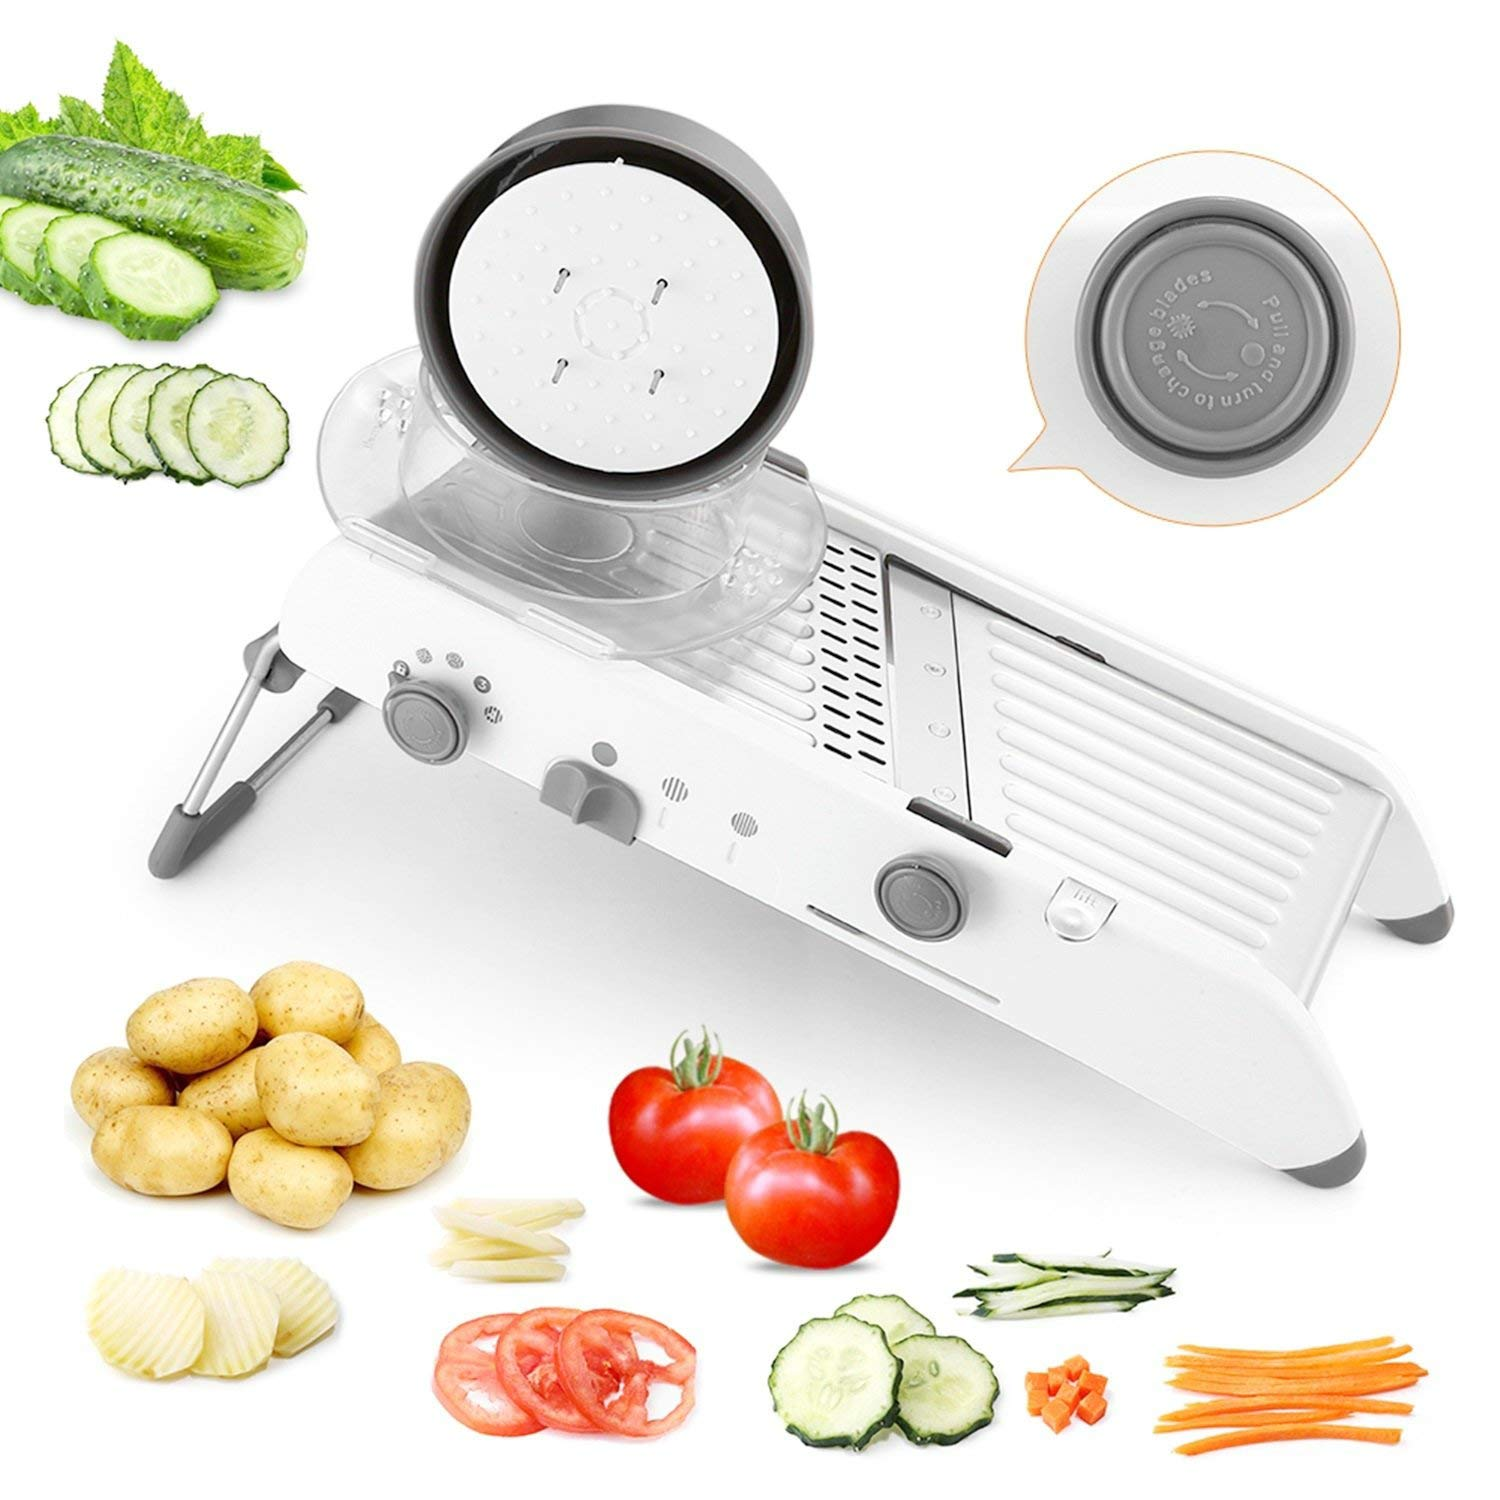 Vegetable Cutter Multi-Function Vegetable Processor Manual Vegetable Cutter Food Chopper Grater Slicer Grinder Multi-Purpose Kitchen Accessories by LAOLIU